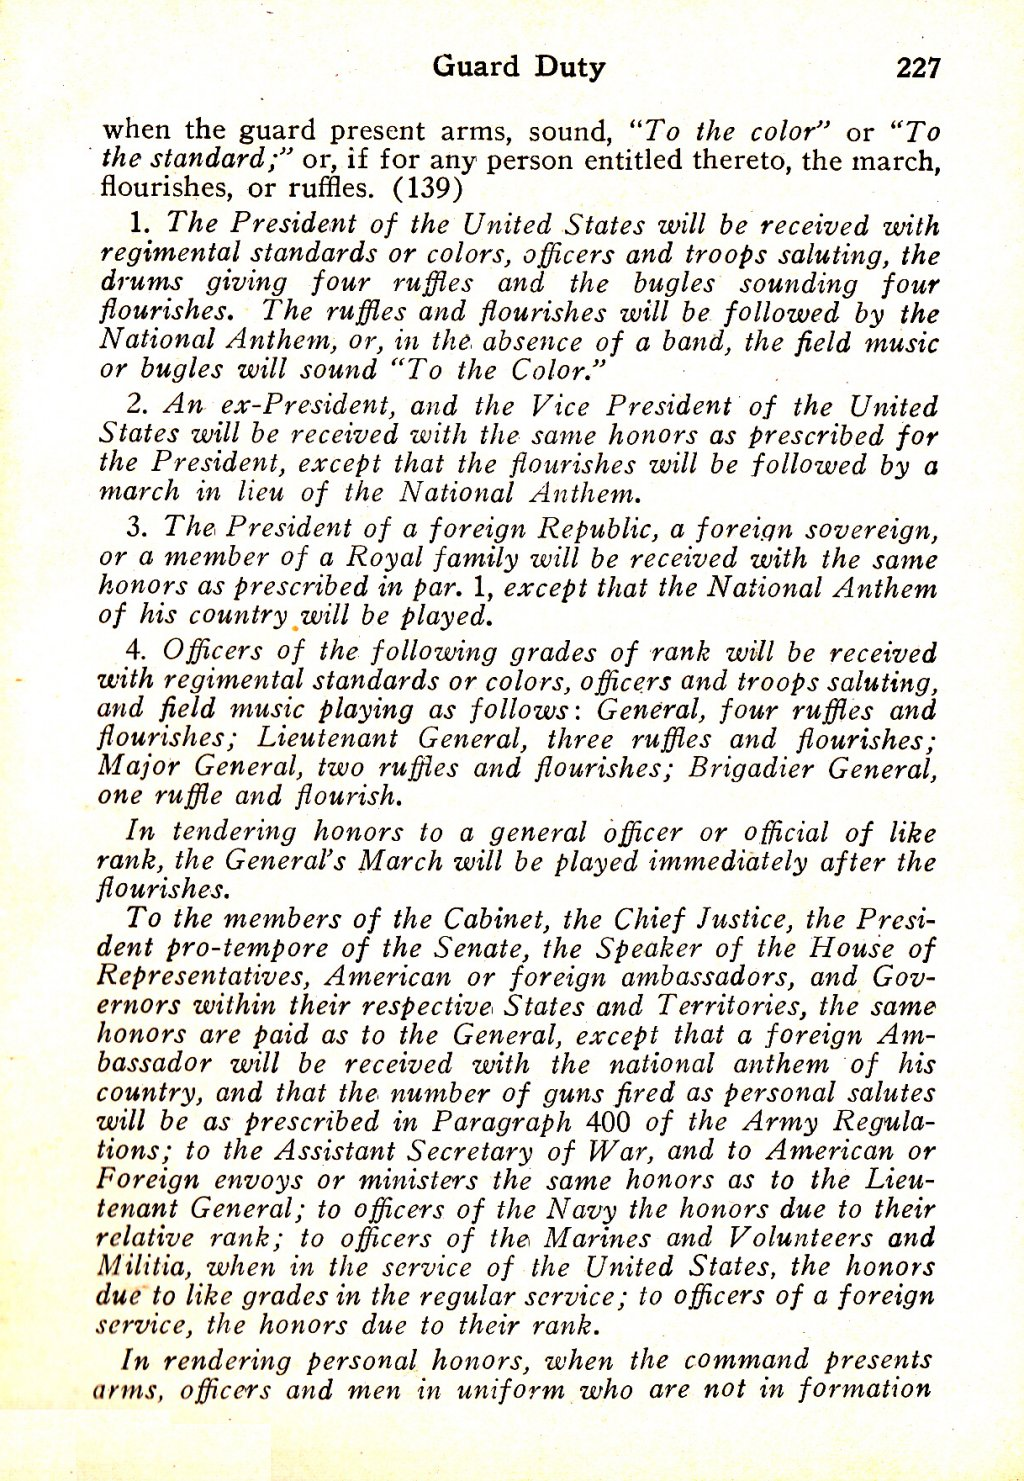 314th Infantry Regiment - Infantry Soldiers Handbook - Waldron - Page 227